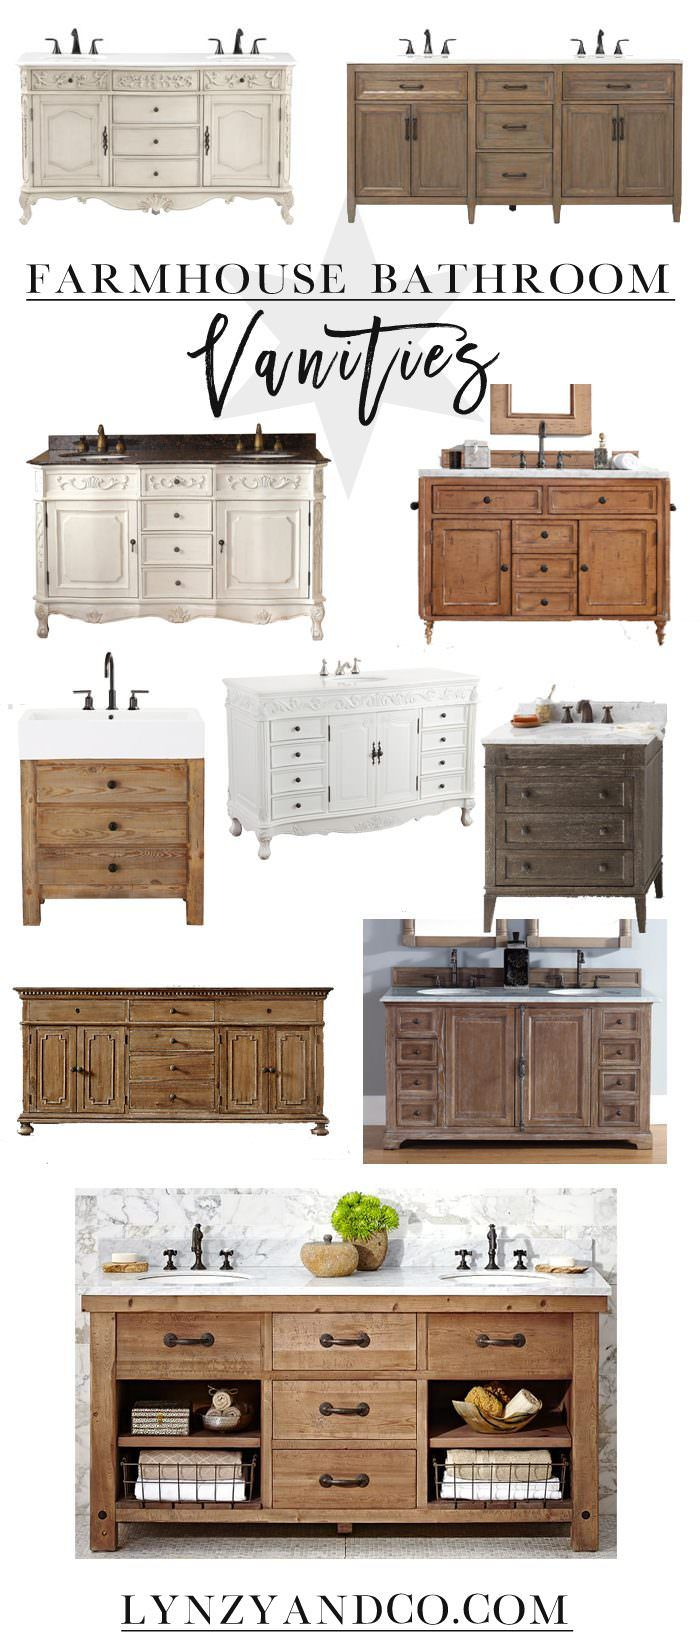 Bathroom Vanities Remodel best farmhouse bathroom vanities | bathroom vanities, vanities and